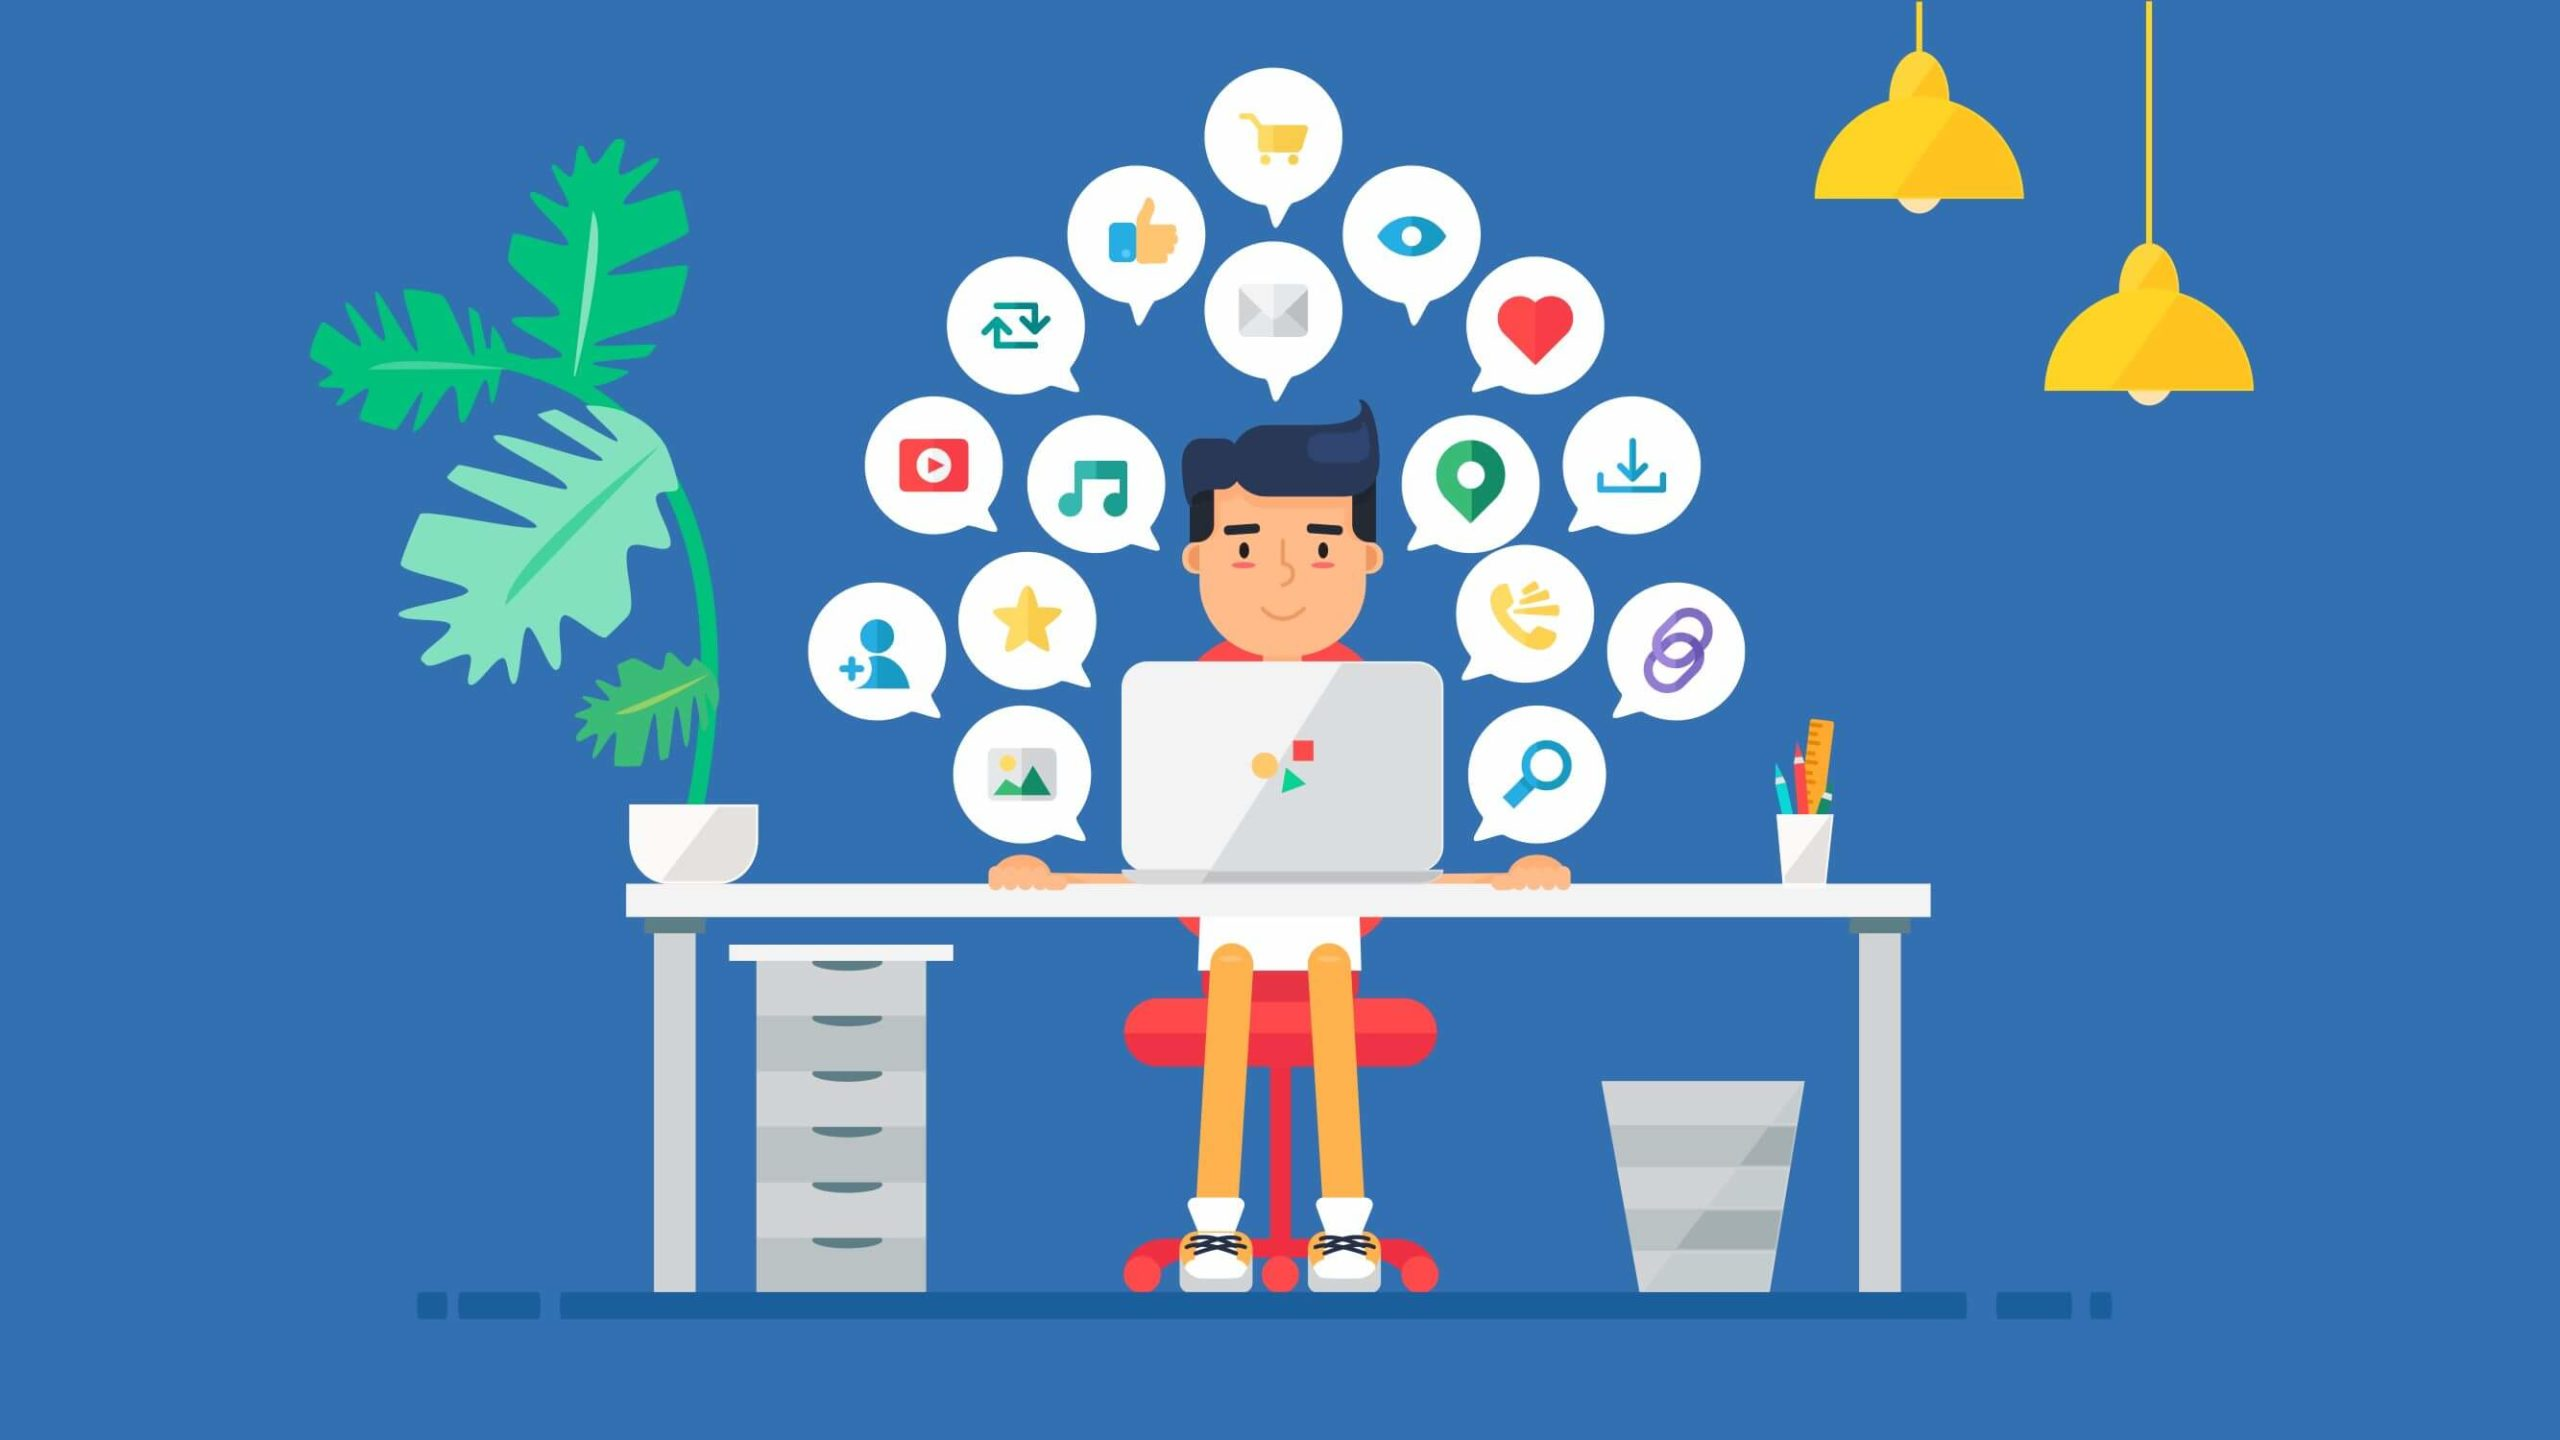 How can social media marketing benefits businesses?